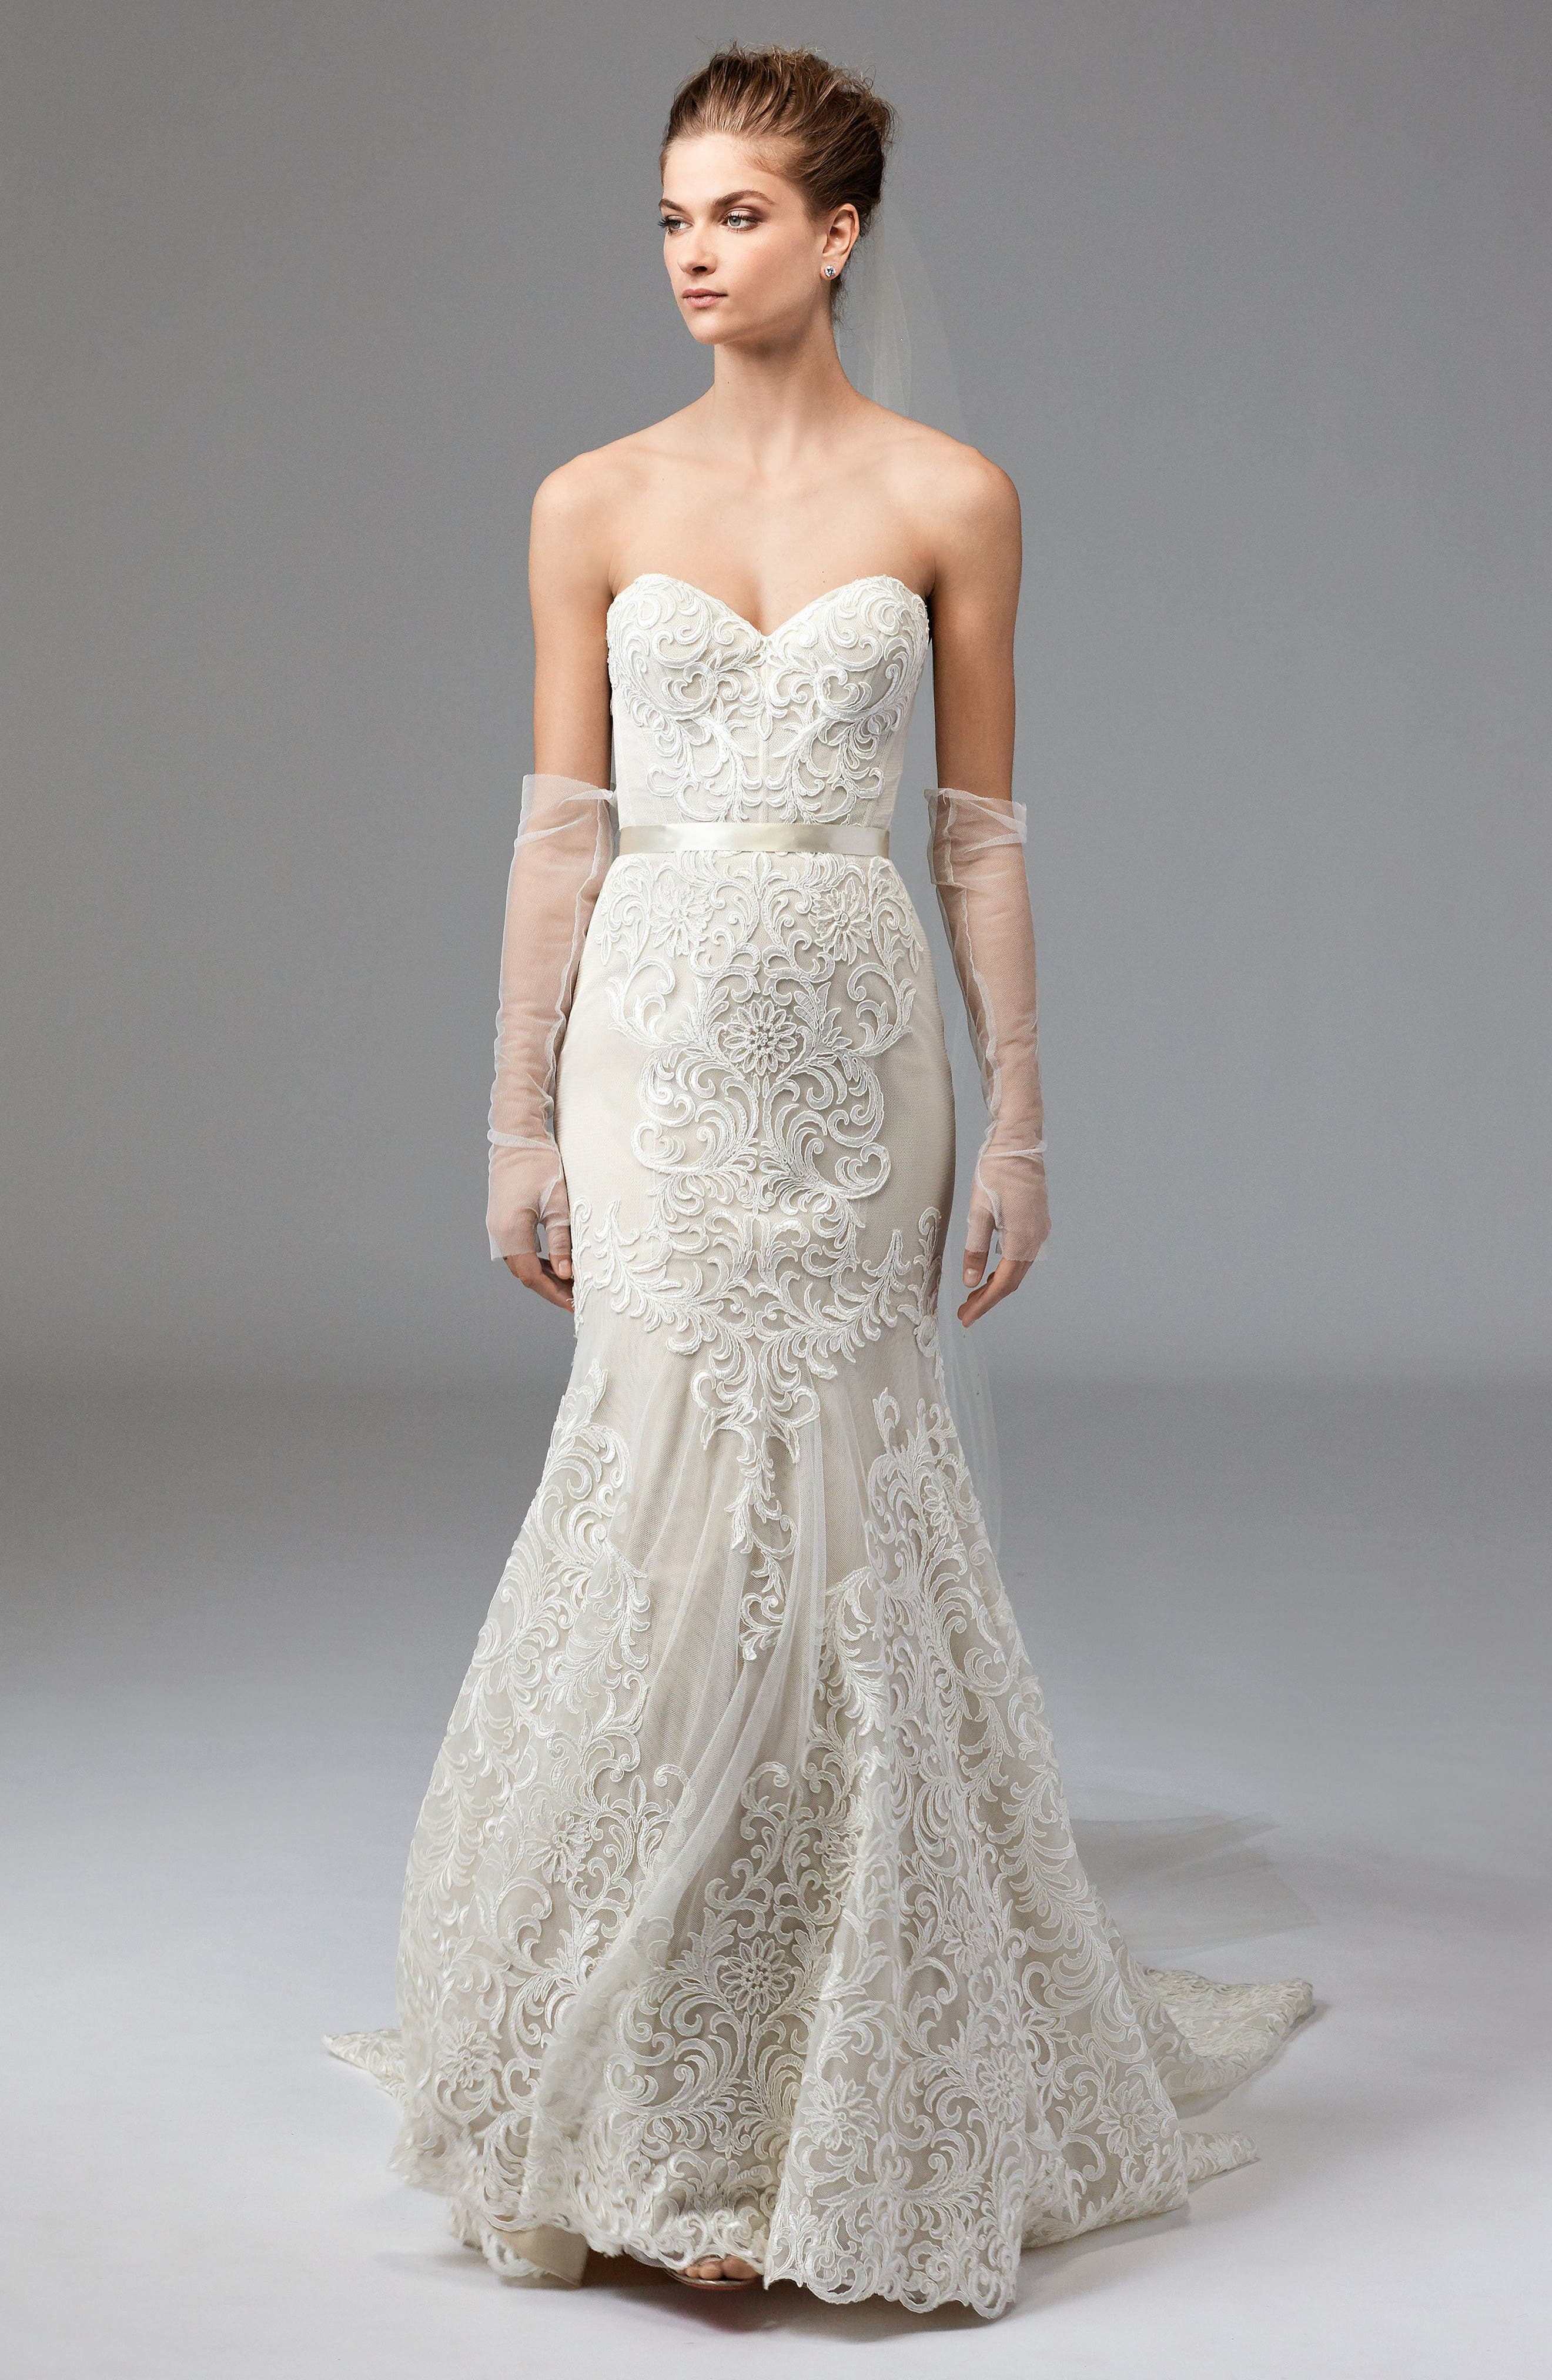 Alice Embroidered Strapless Trumpet Gown,                             Alternate thumbnail 4, color,                             IVORY/CHAMPAGNE/VANILLA BEAN